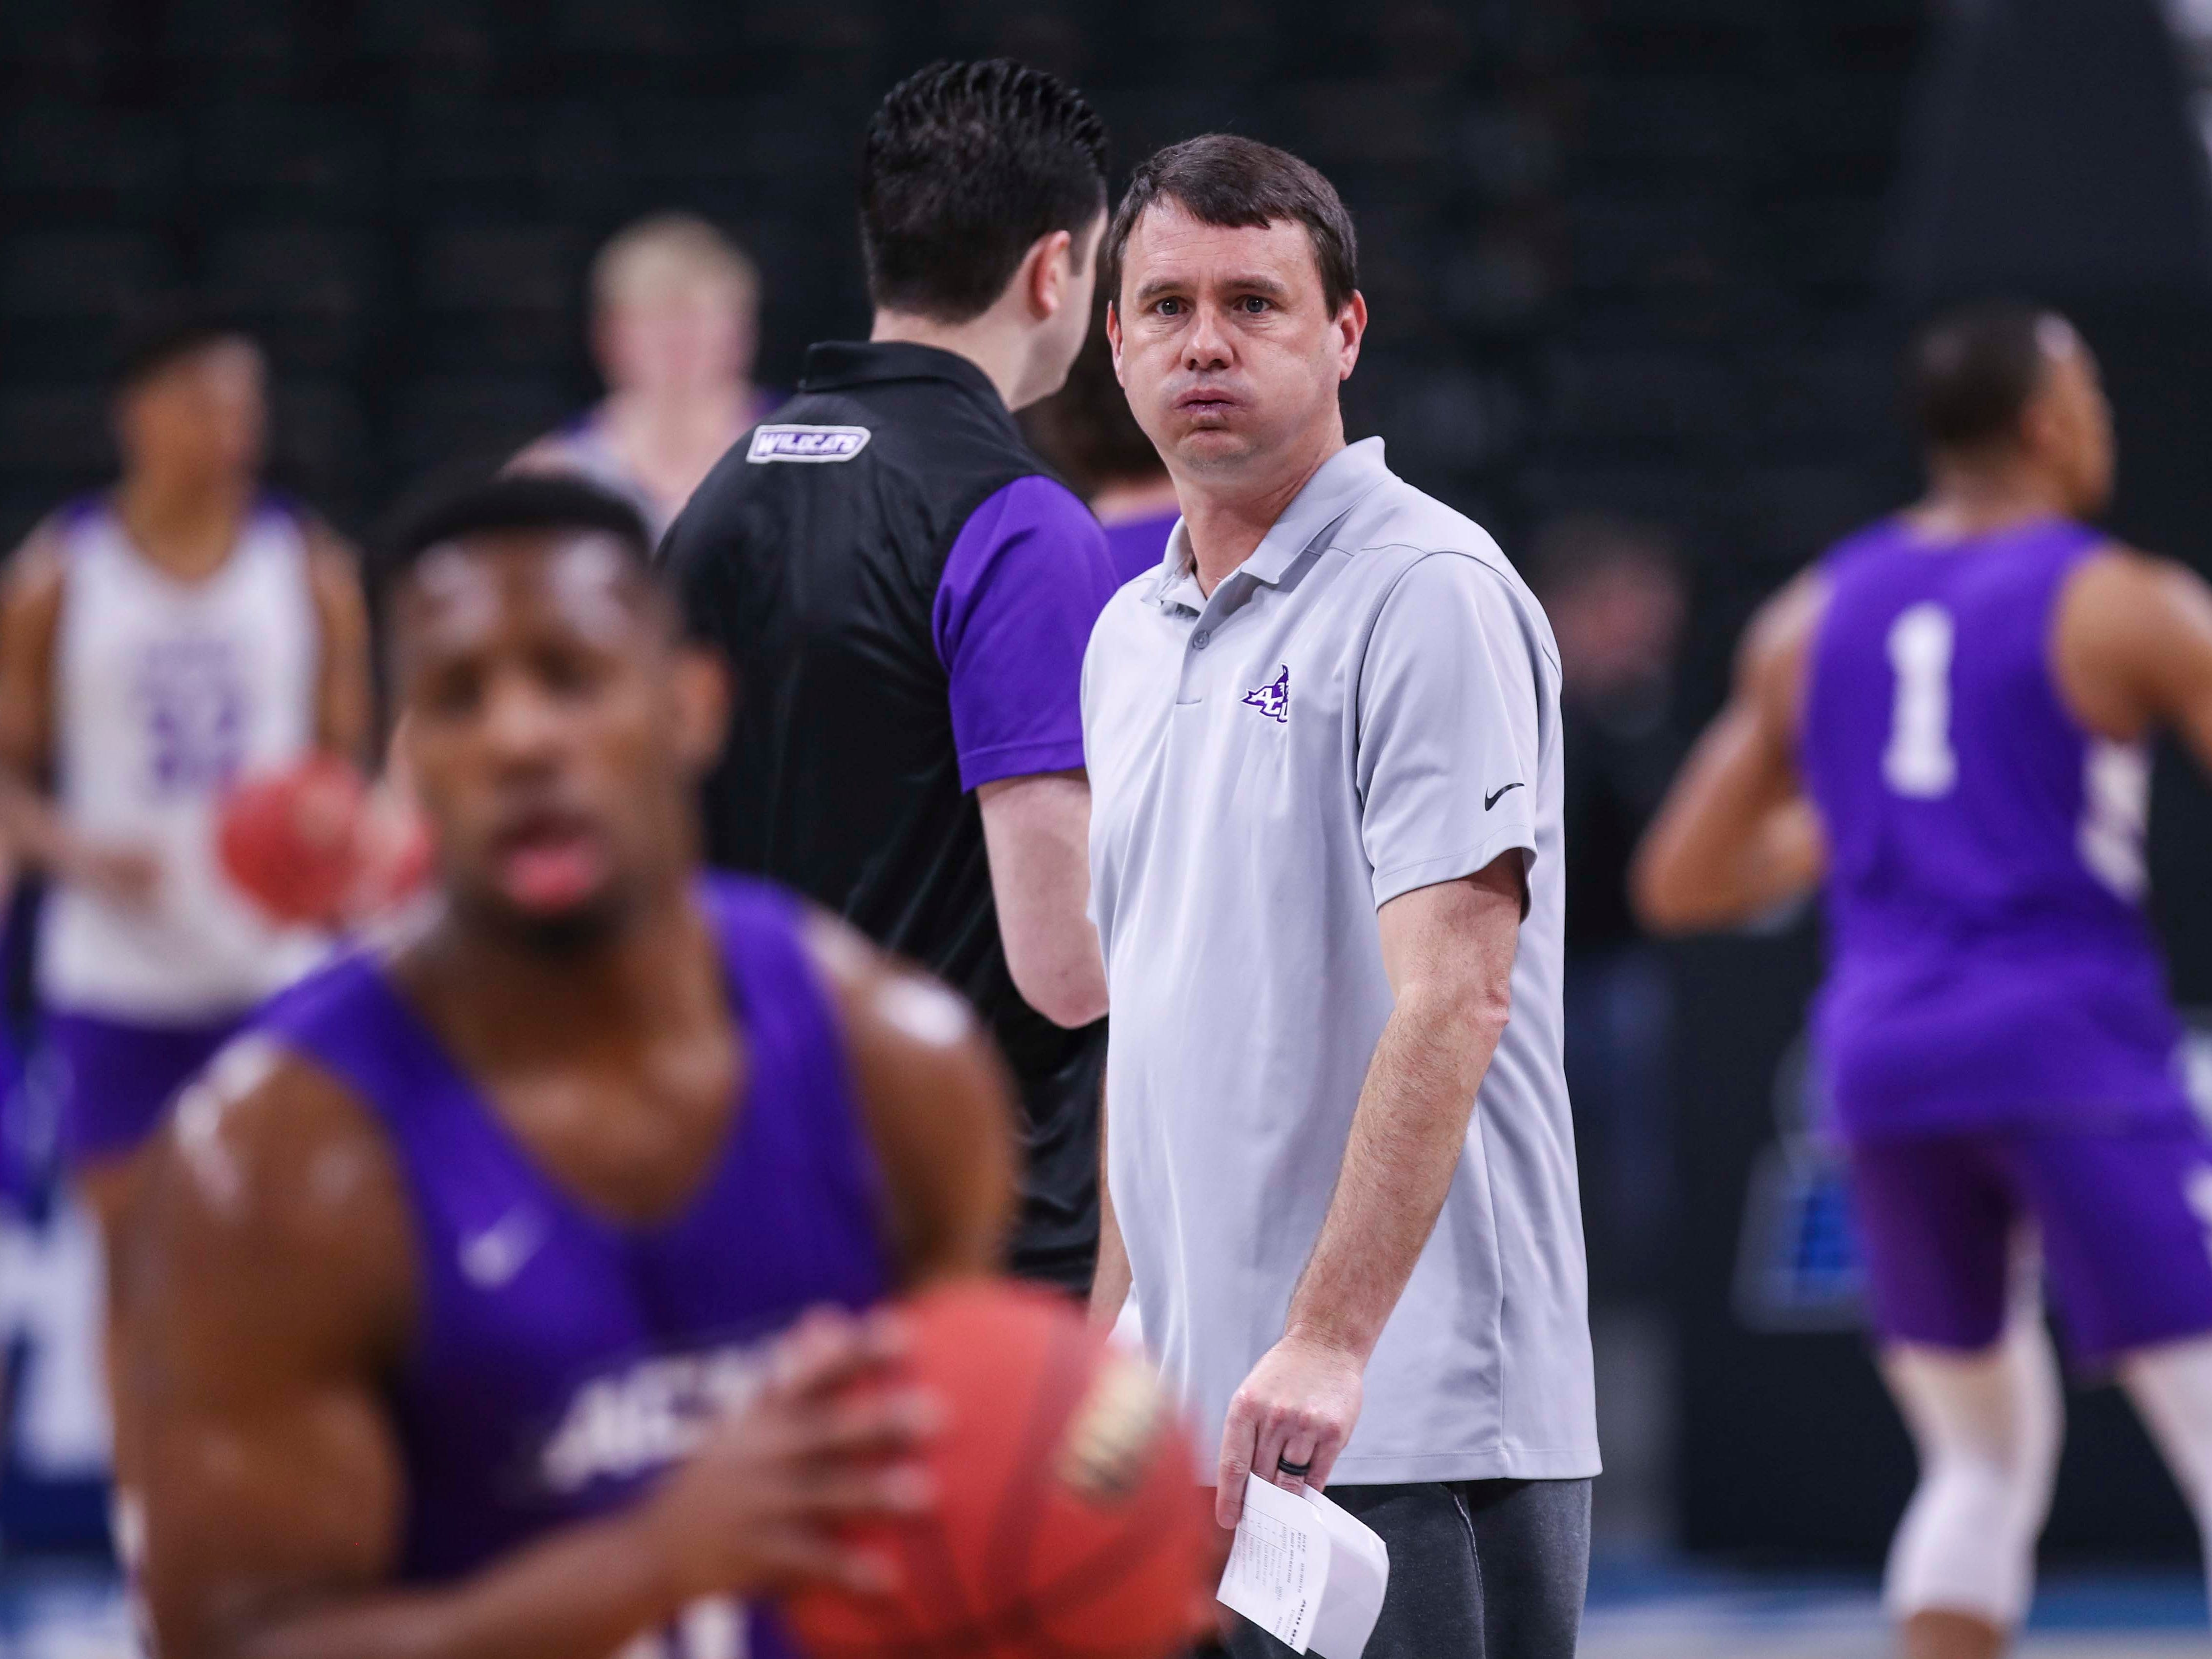 """Abilene Christian head coach Joe Golding watches his team practice Wednesday morning before the start of the Midwest Region of the NCAA tournament. """"If he shows up in a boot we have a chance,"""" Golding said about PJ Washington Jr.  """"If he takes the boot off, we've got a problem."""" March 20, 2019"""